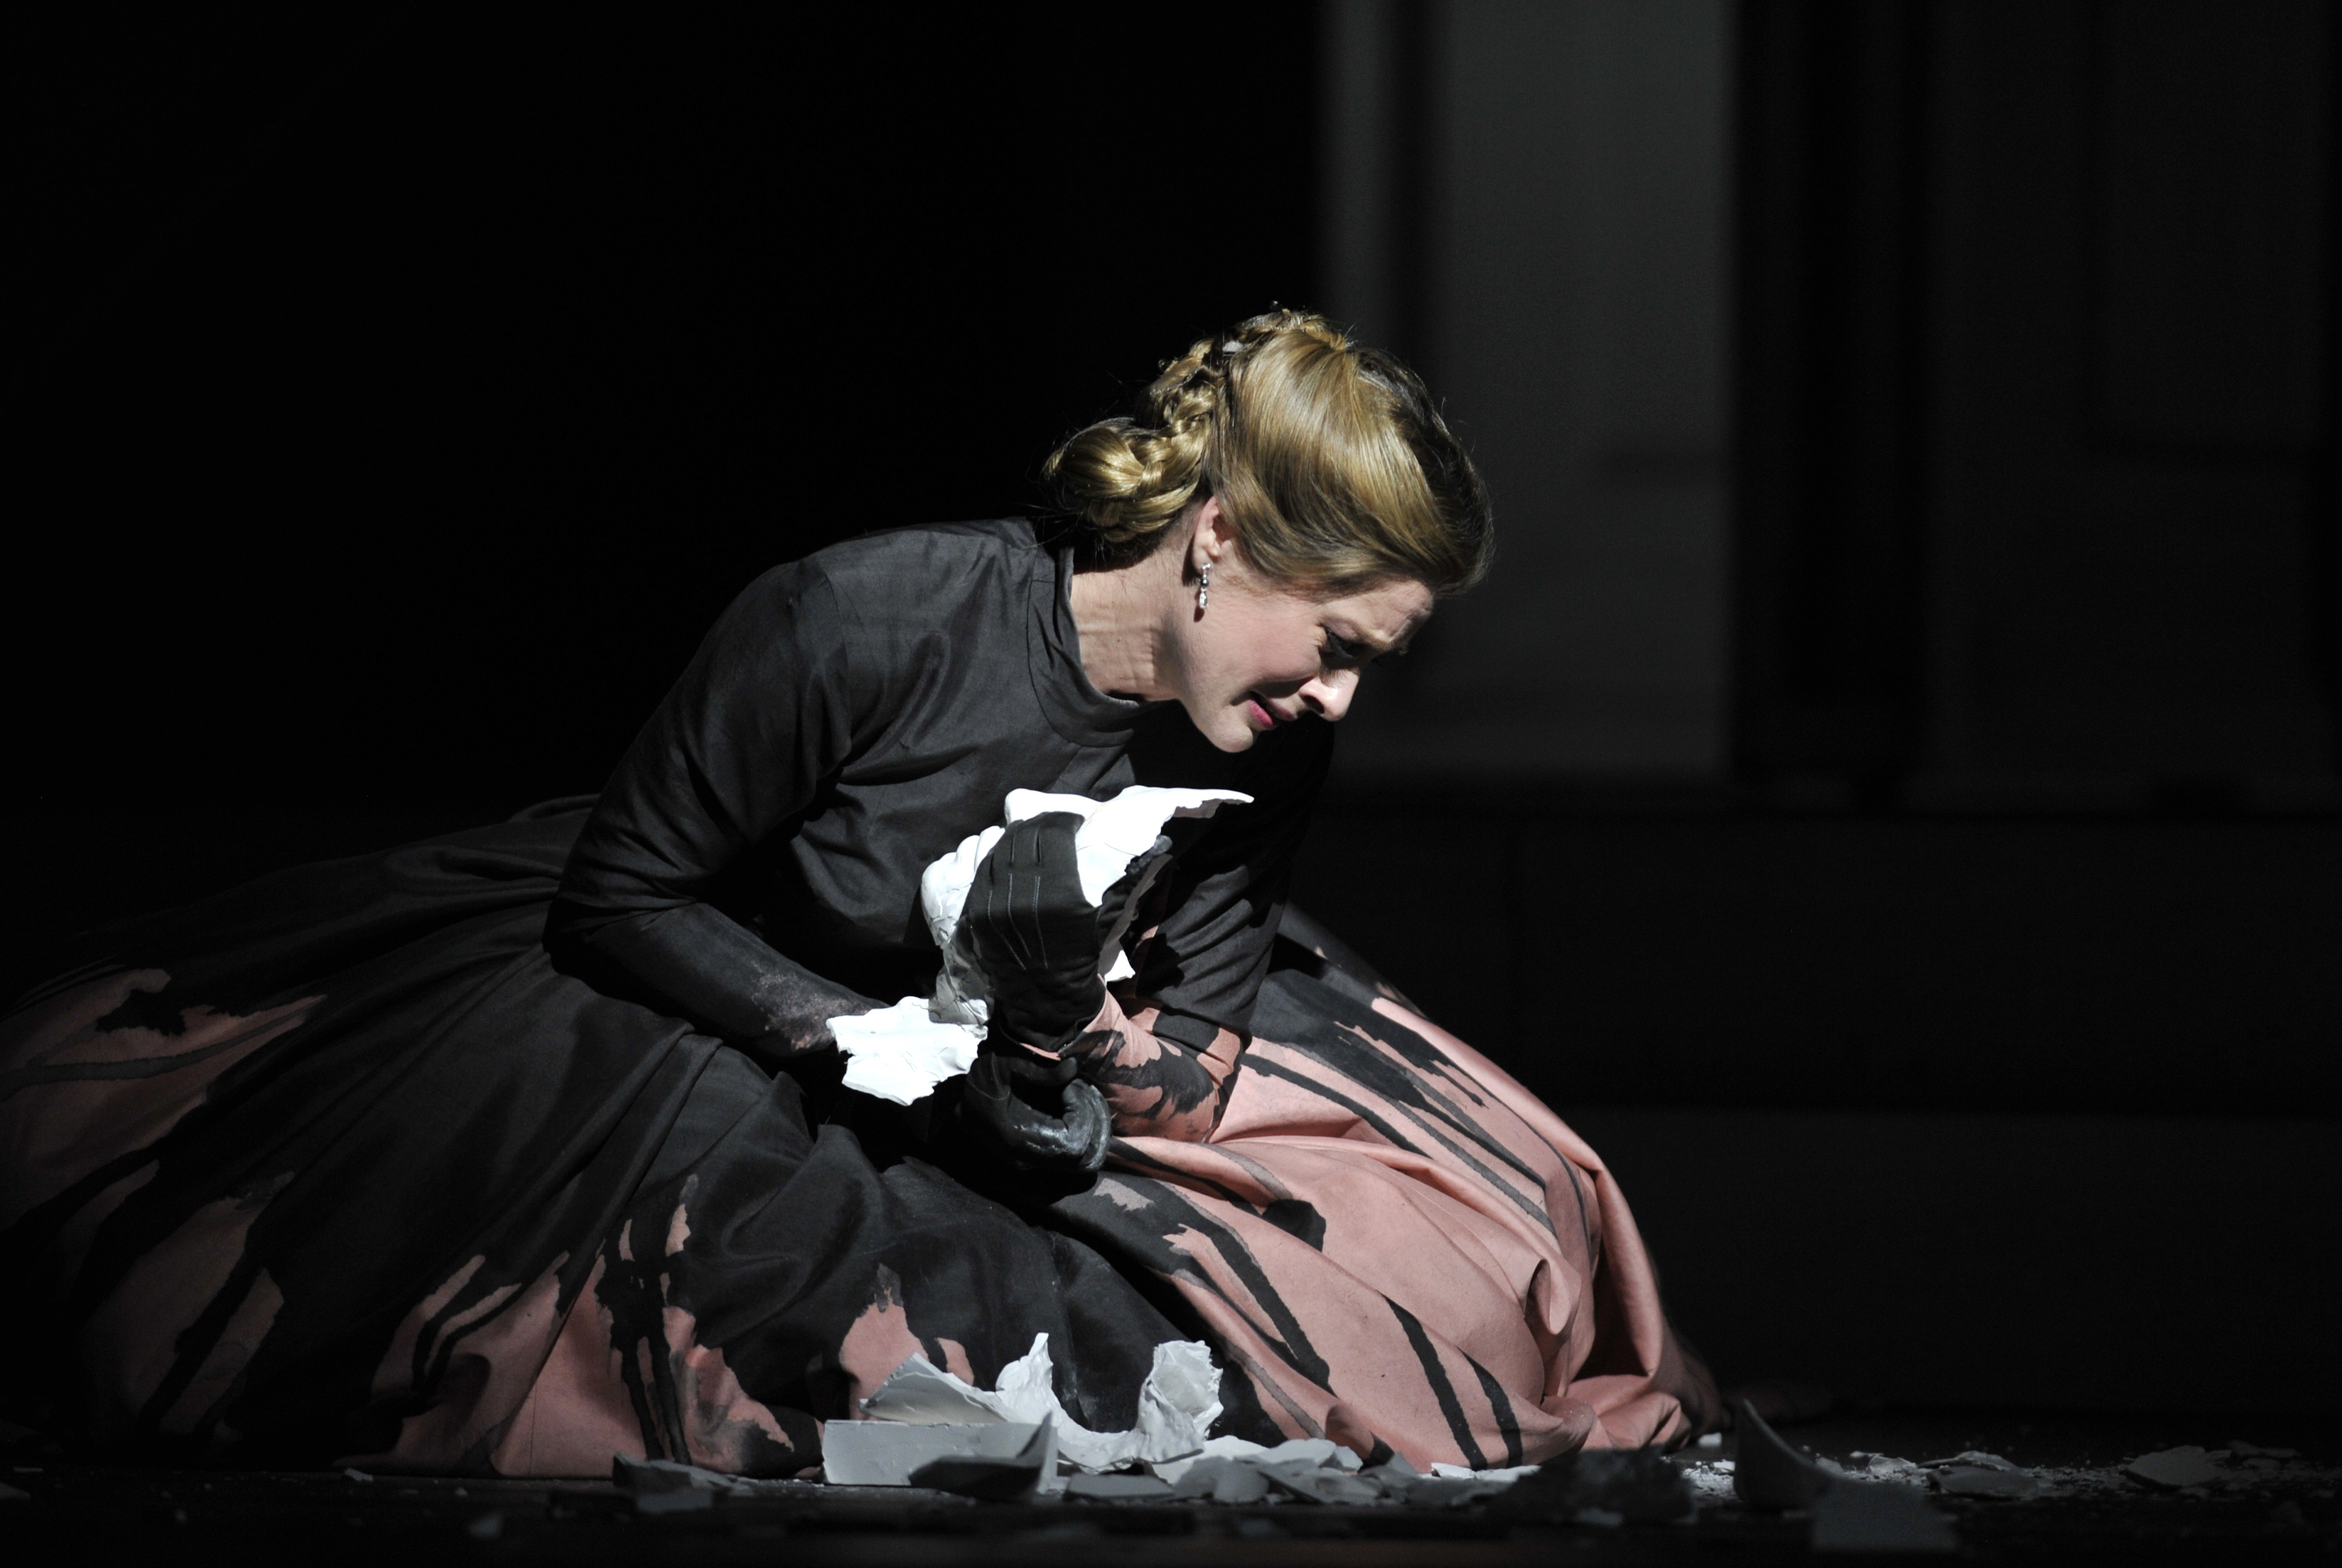 Malin Bystrom as Donna Anna in the Royal Operas production of Wolfgang Amadeus Mozart's Don Giovanni directed by Kasper Holten and conducted by Nicola Luisotti at the Royal Opera House Covent Garden in London. (Photo by robbie jack/Corbis via Getty Images)